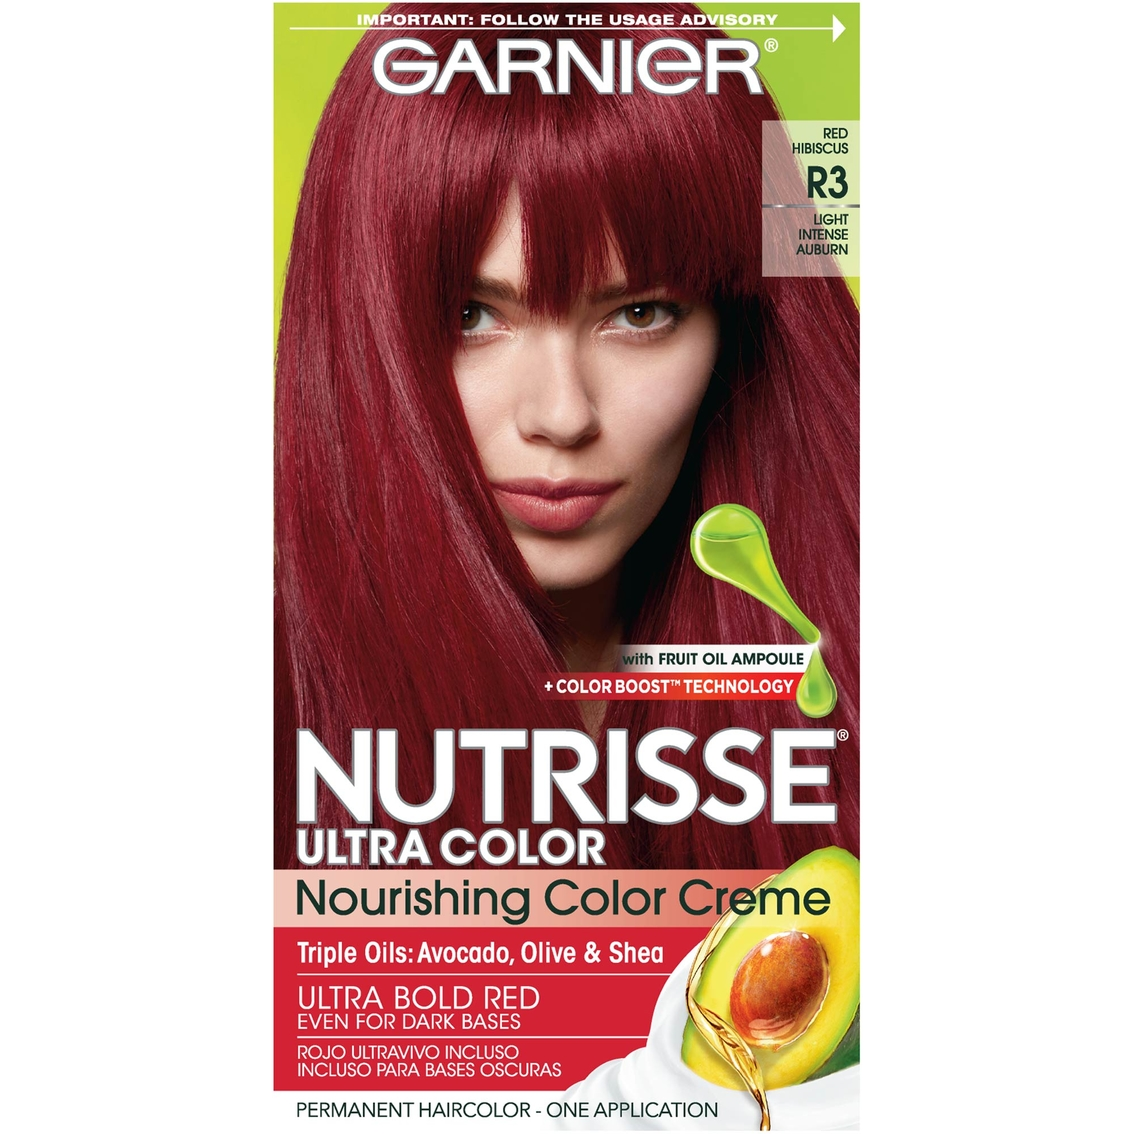 Garnier Nutrisse Ultra Color Nourishing Color Creme Hair